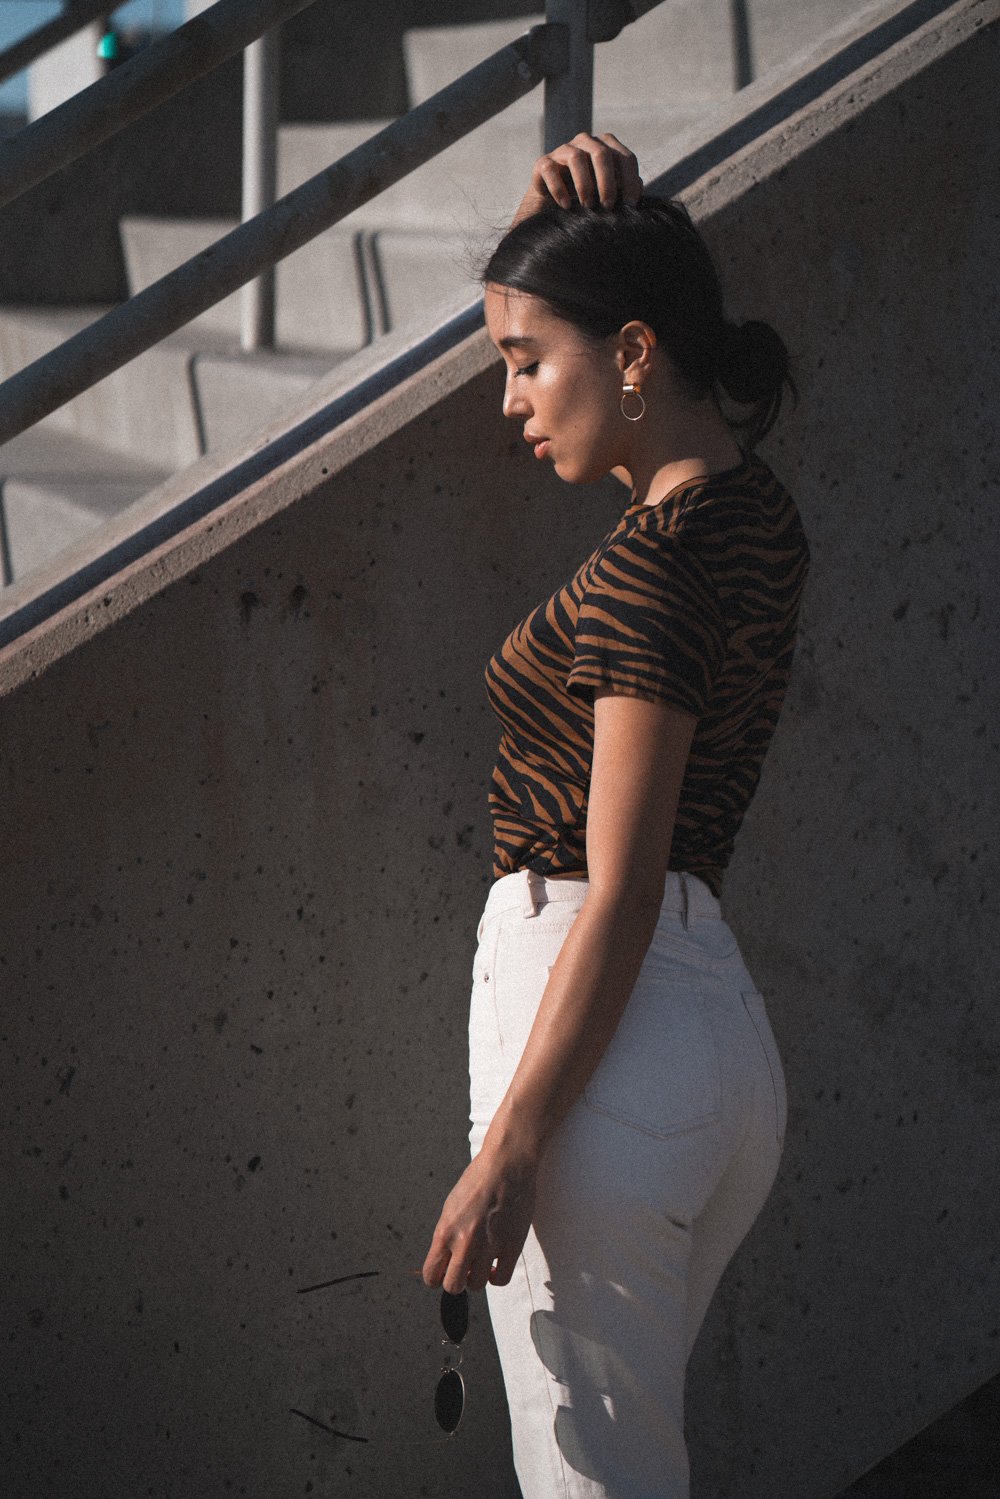 LOVE OR MONEY by Emily Tong wearing And Other Stories Zebra Top and White Jeans